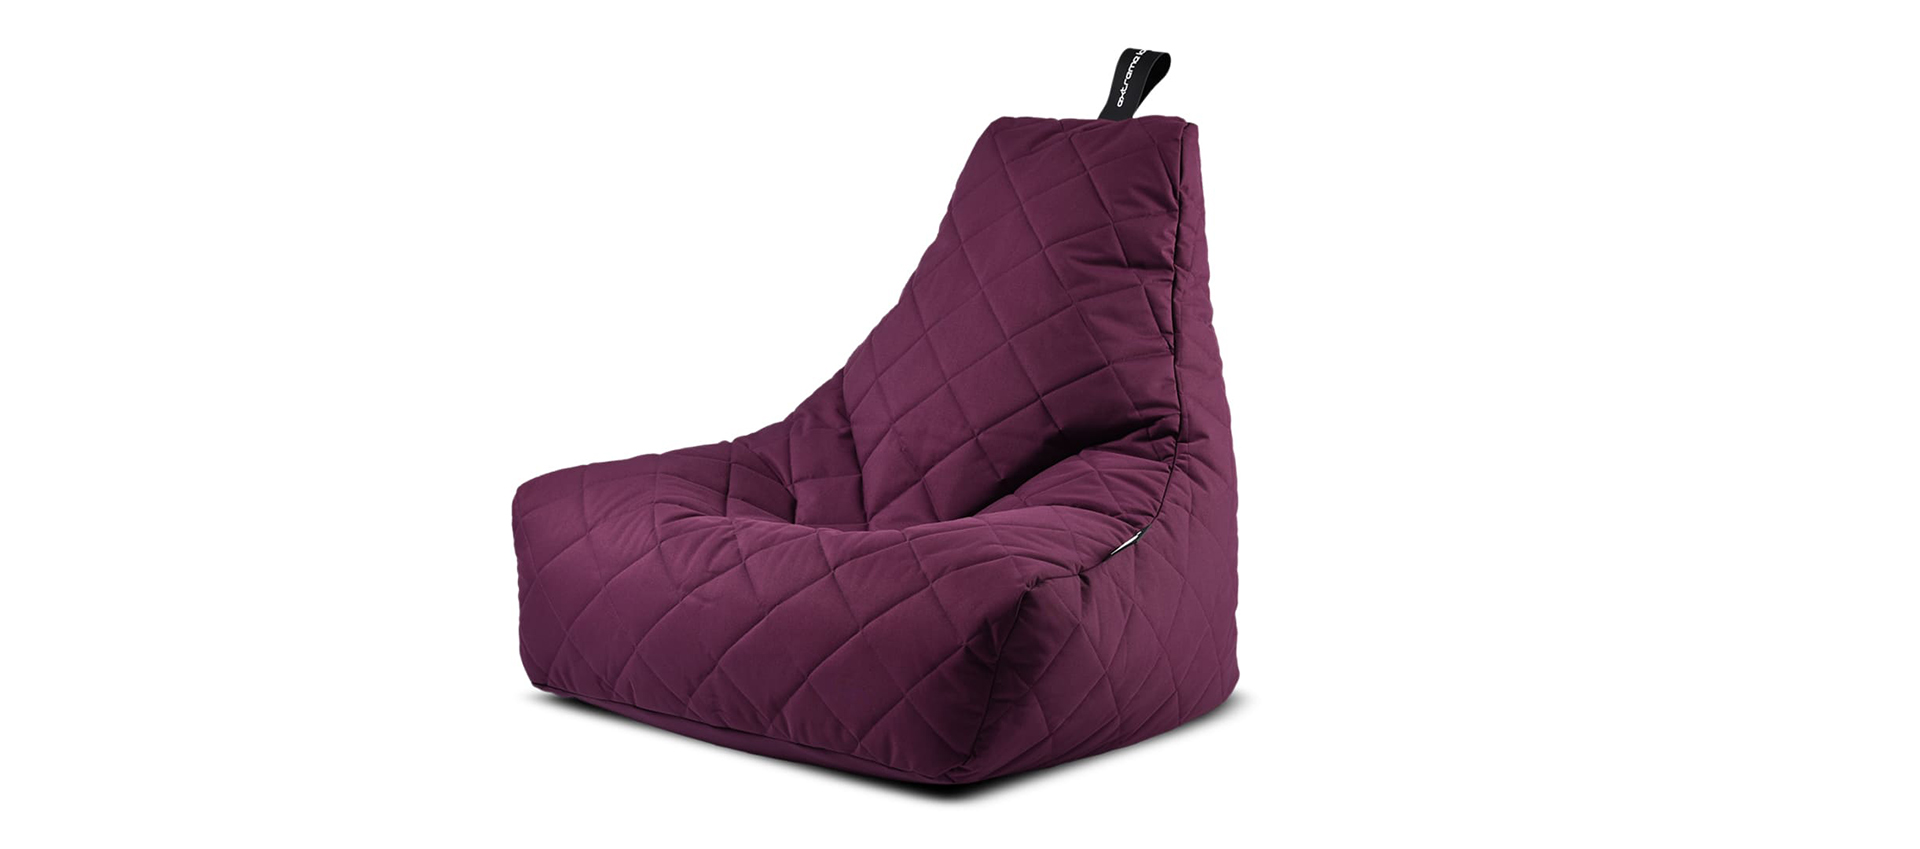 Extreme Lounging - Mighty Quilted Bean Bag